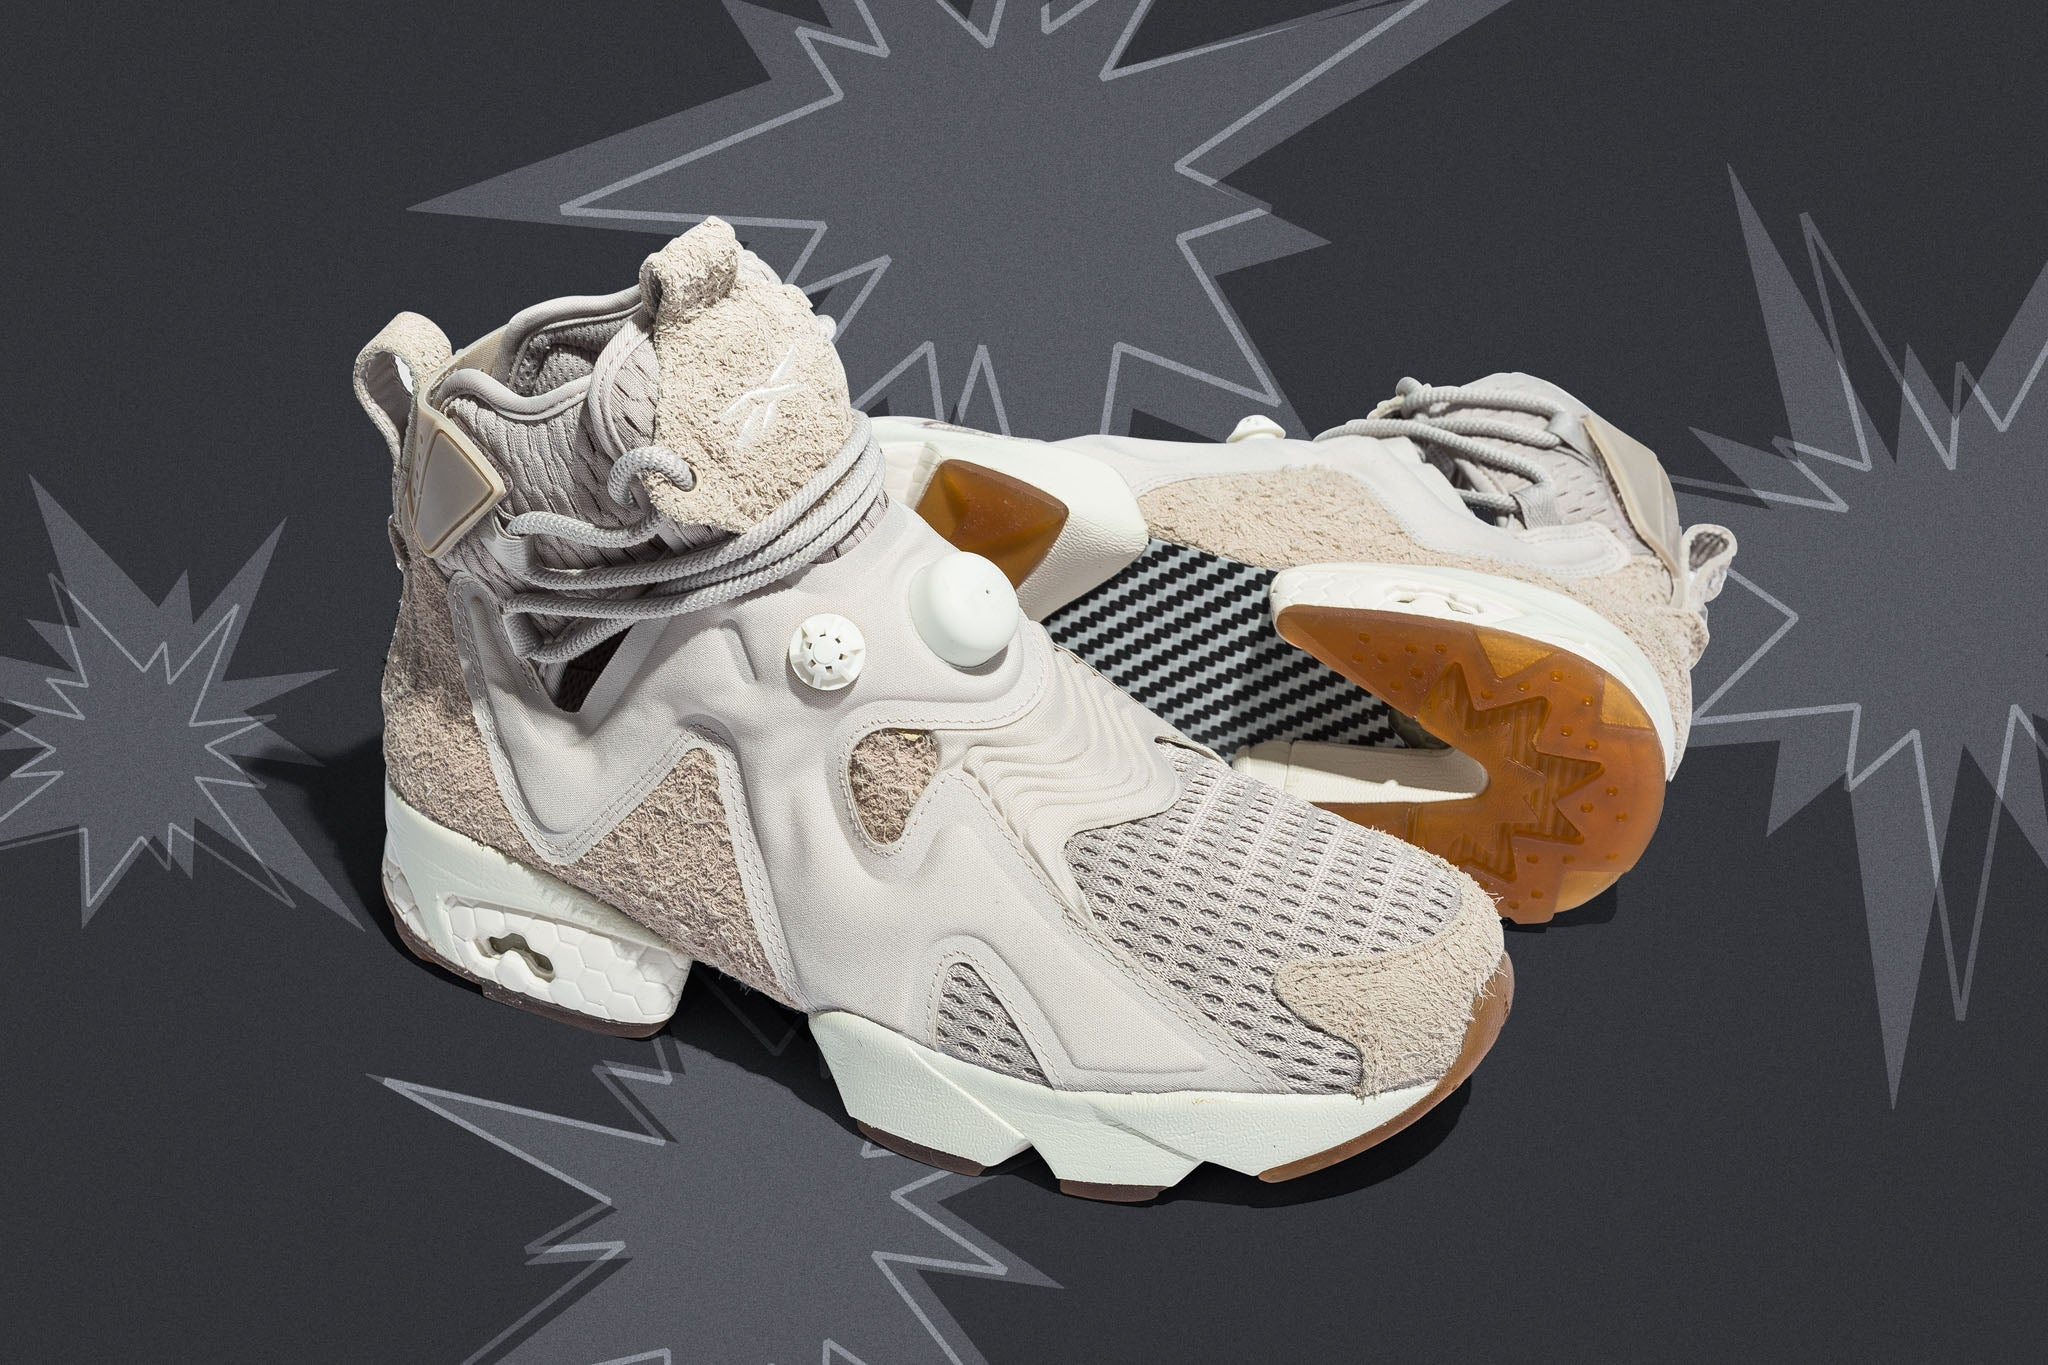 f6287cf88 Reebok in collaboration with rapper, artist and musician Future drops a new  furylite high-top profile. The Furikaze features a rough cut hairy suede  upper ...